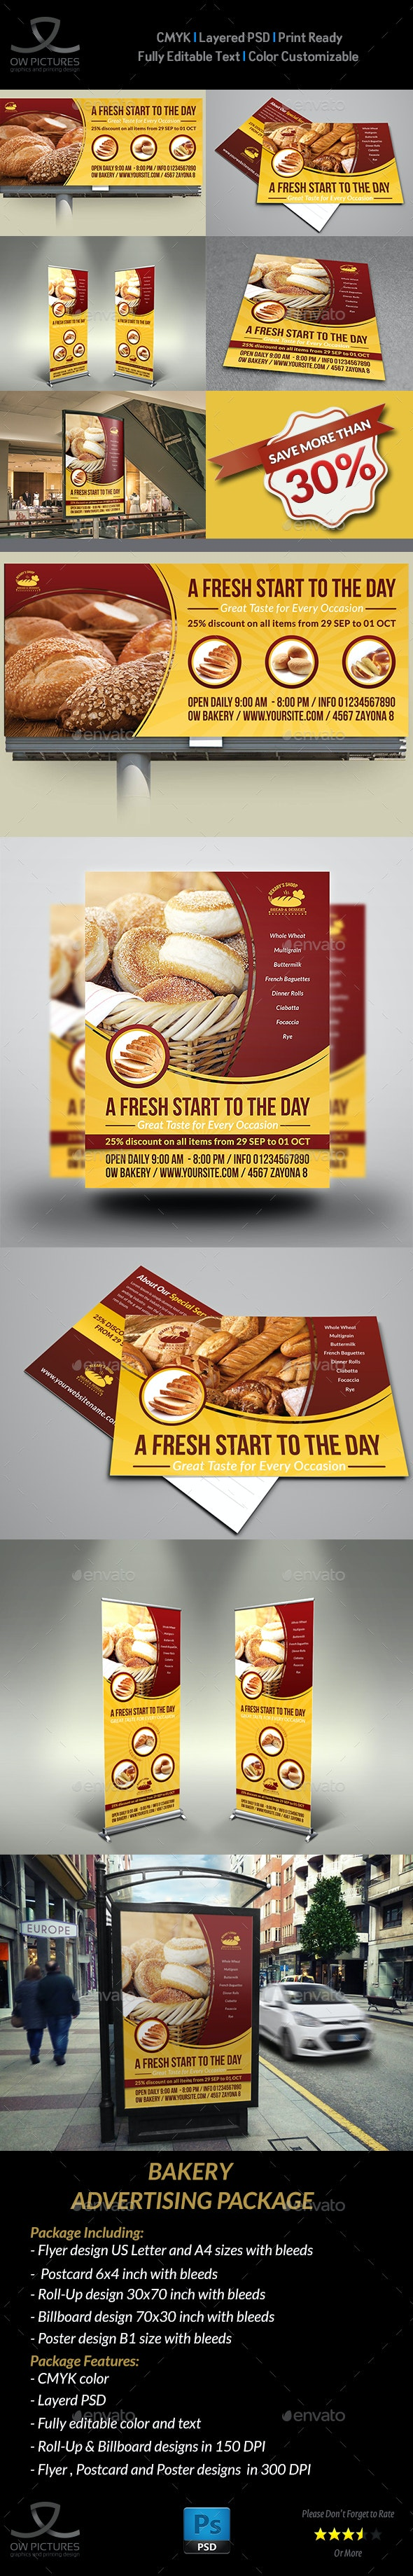 Bakery Advertising Bundle Vol.2 - Signage Print Templates